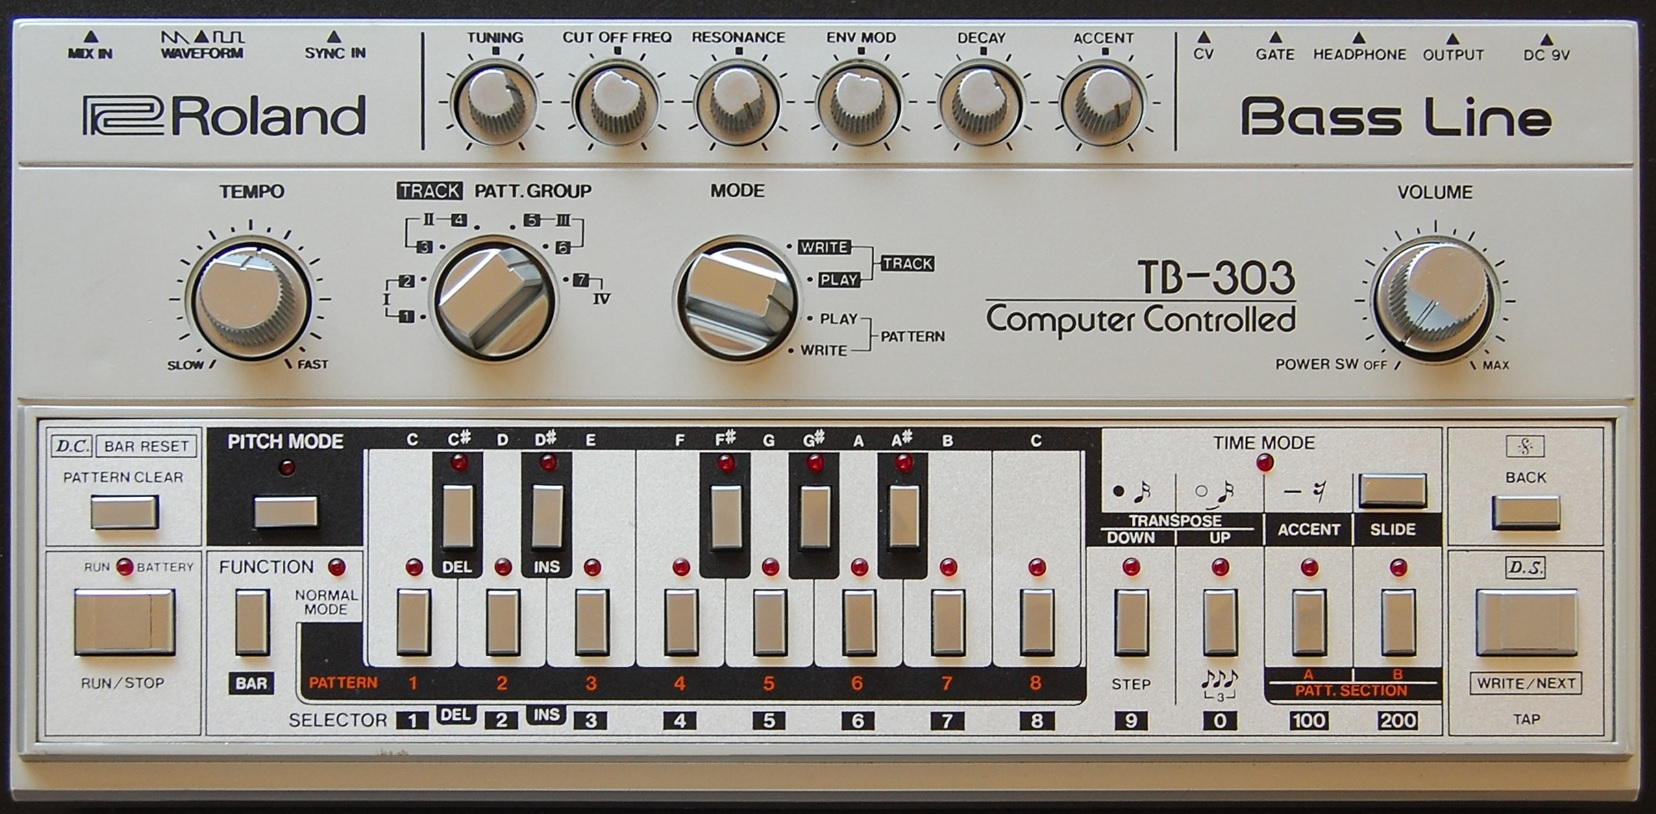 https://upload.wikimedia.org/wikipedia/commons/f/fd/Roland_TB-303_Panel.jpg